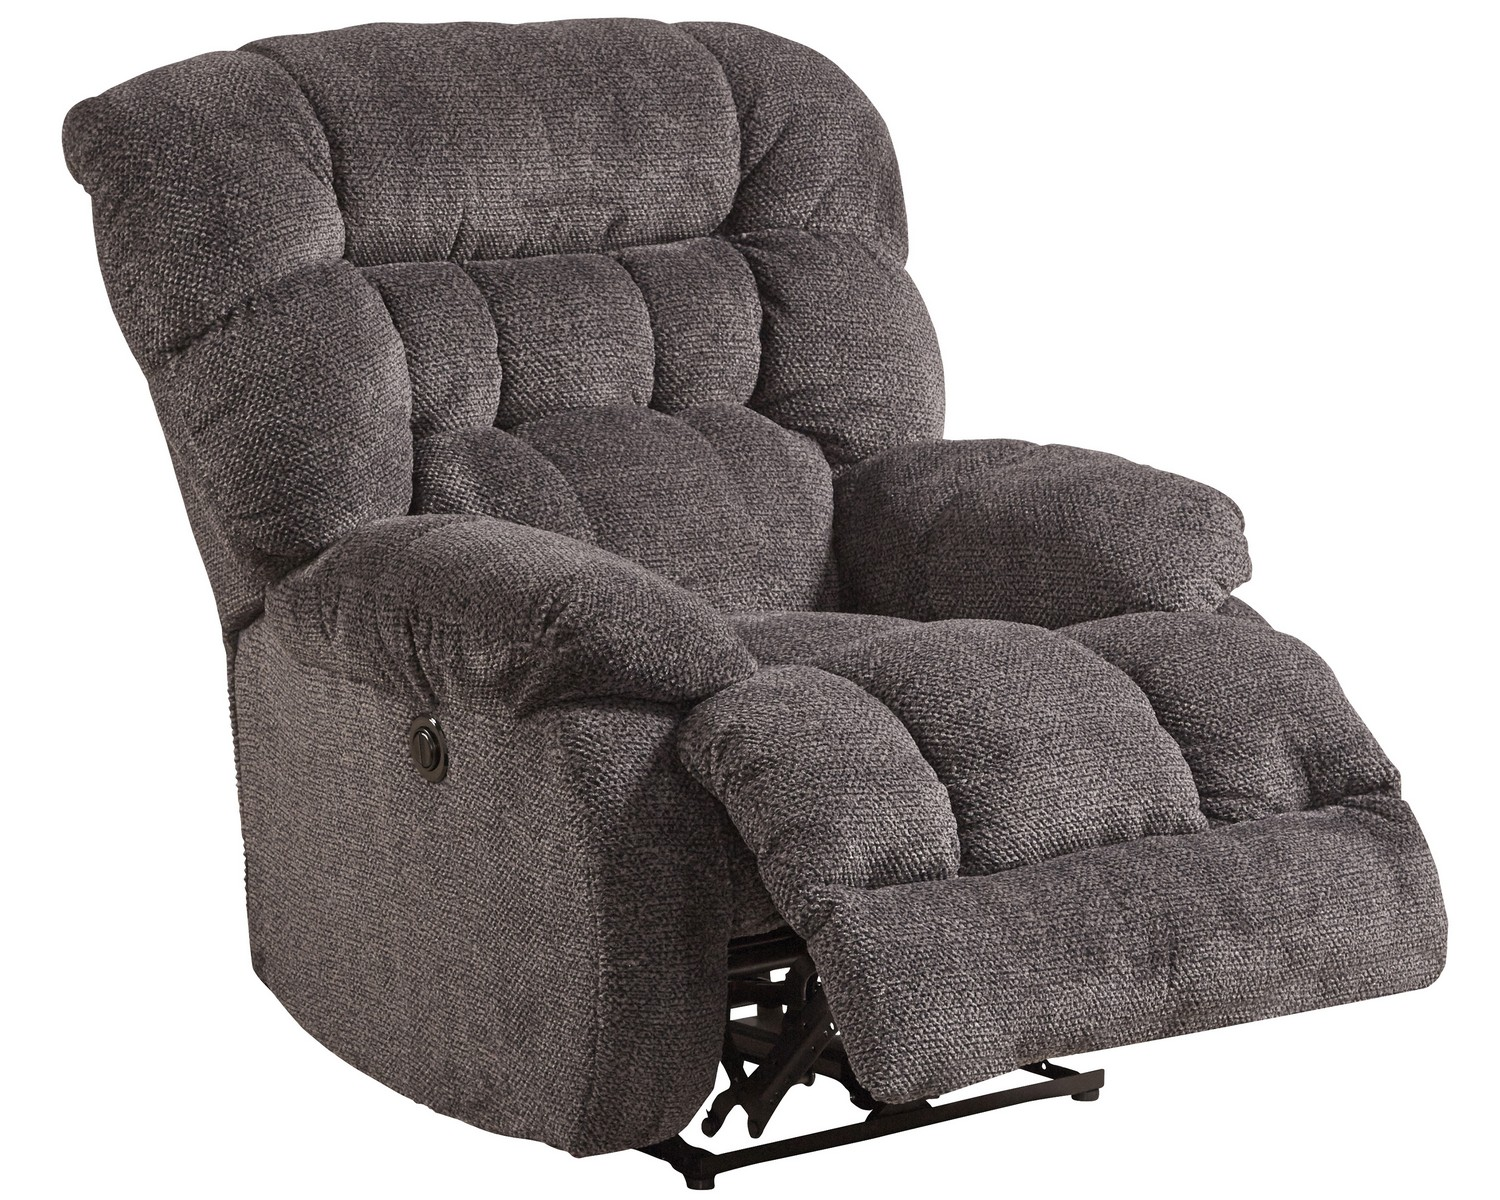 CatNapper Daly Power Lay Flat Recliner - Cobblestone